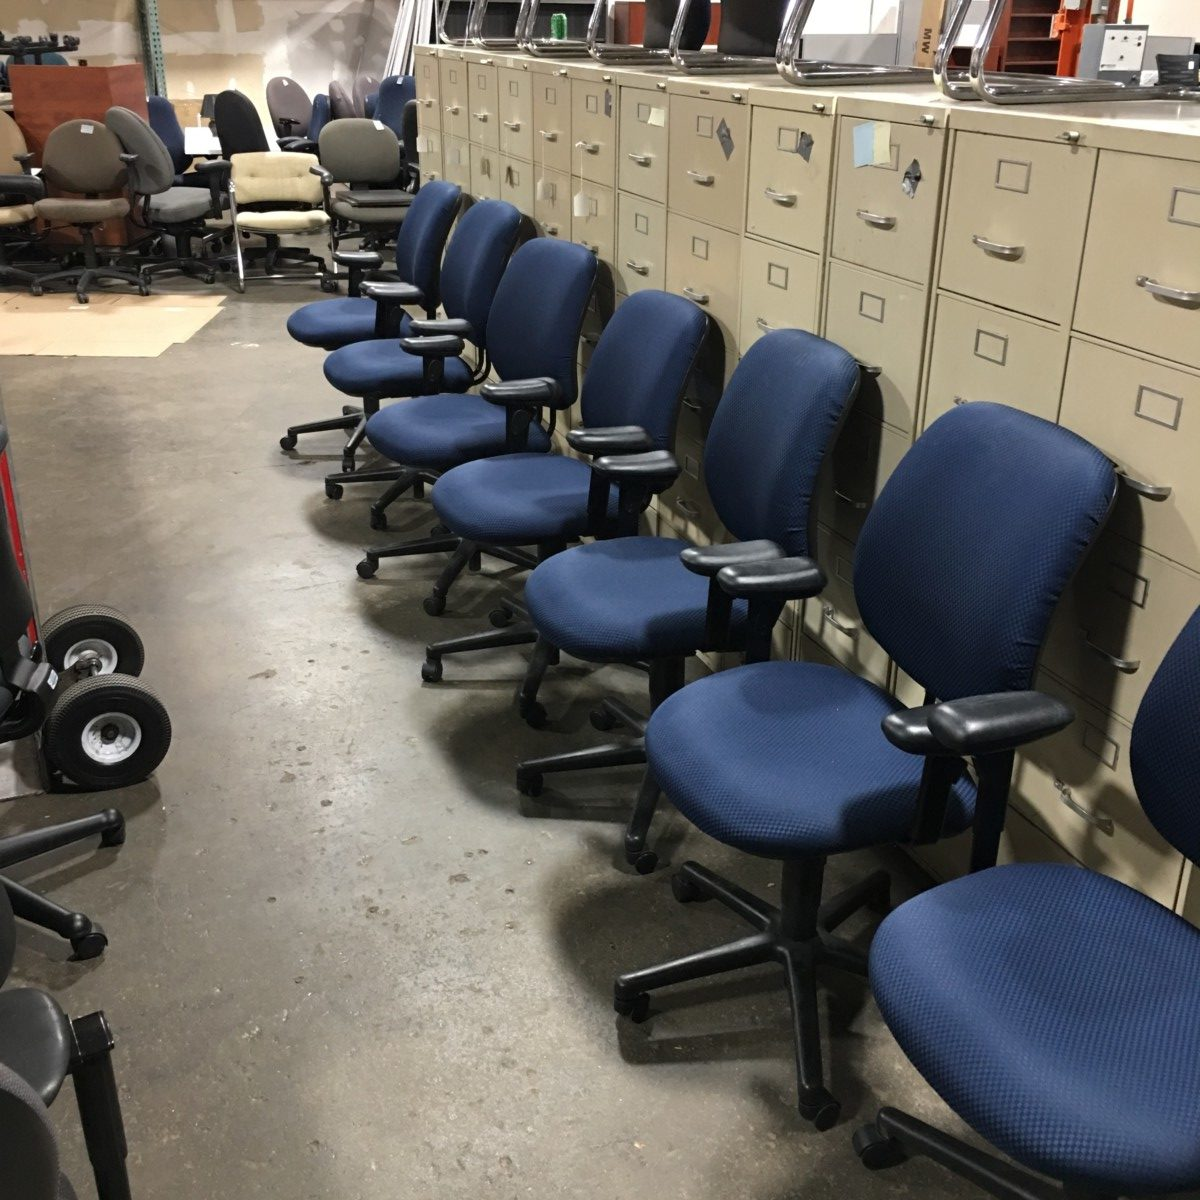 used computer chairs childrens table and chair sets plastic blue hon task 55 better office furniture